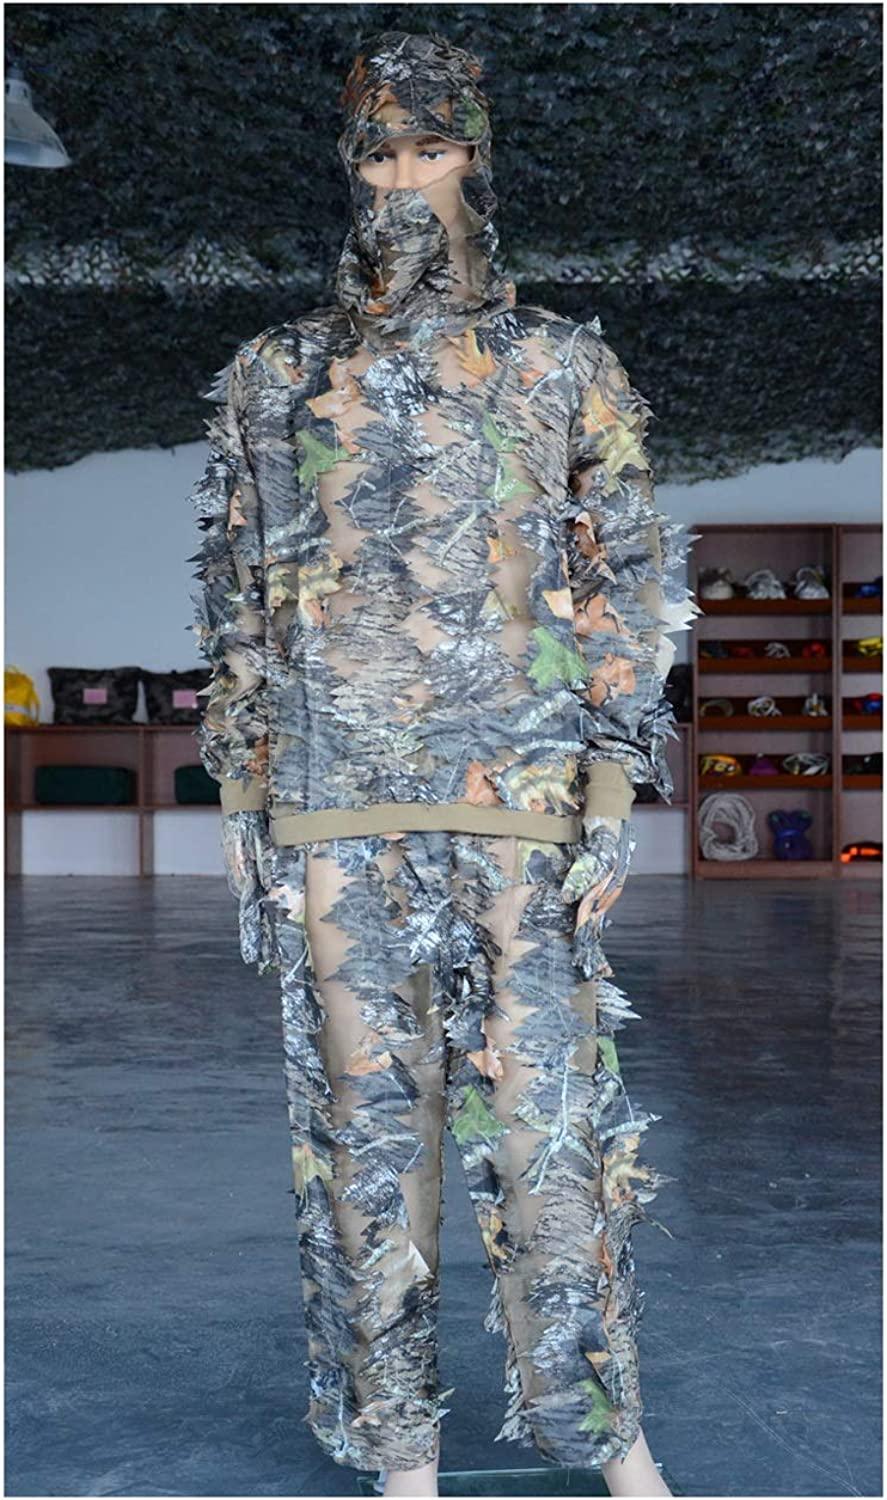 AKMQBZ 3D Outdoor Jungle Bionic Leaf Camouflage Hunting SuitOne Size, Polyester fabric + mesh gauze